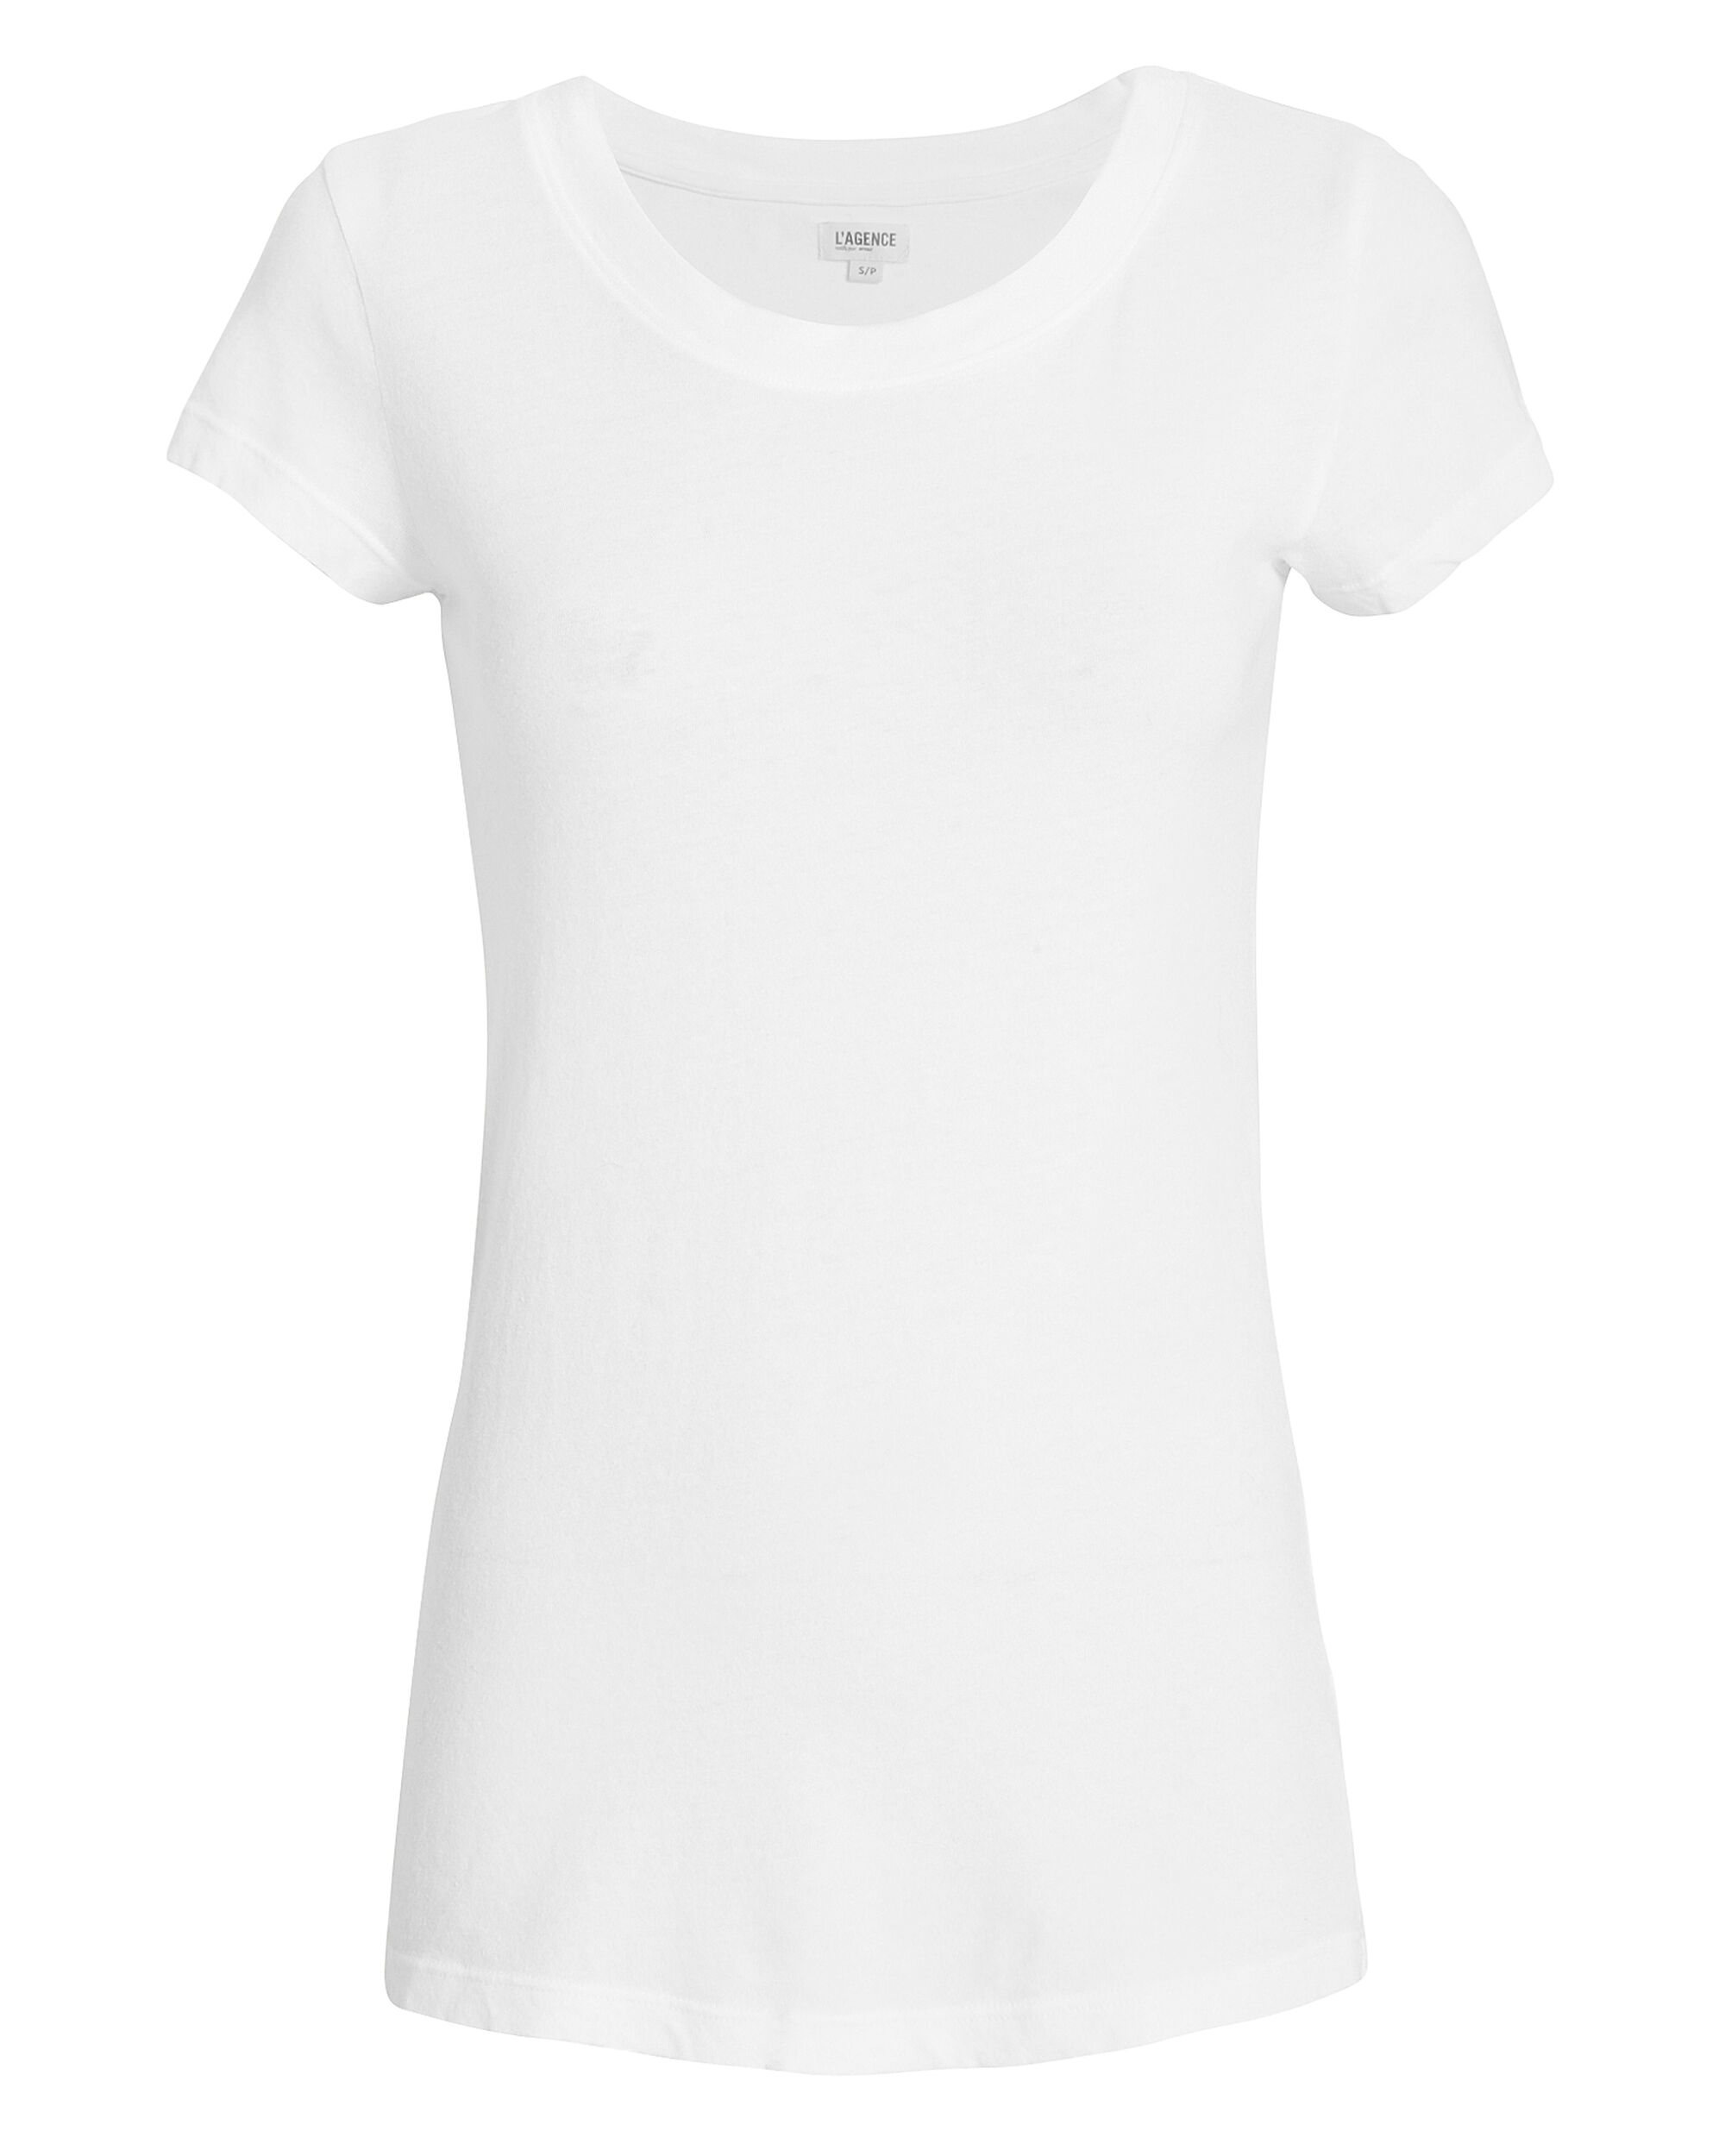 Cory T-Shirt, WHITE, hi-res